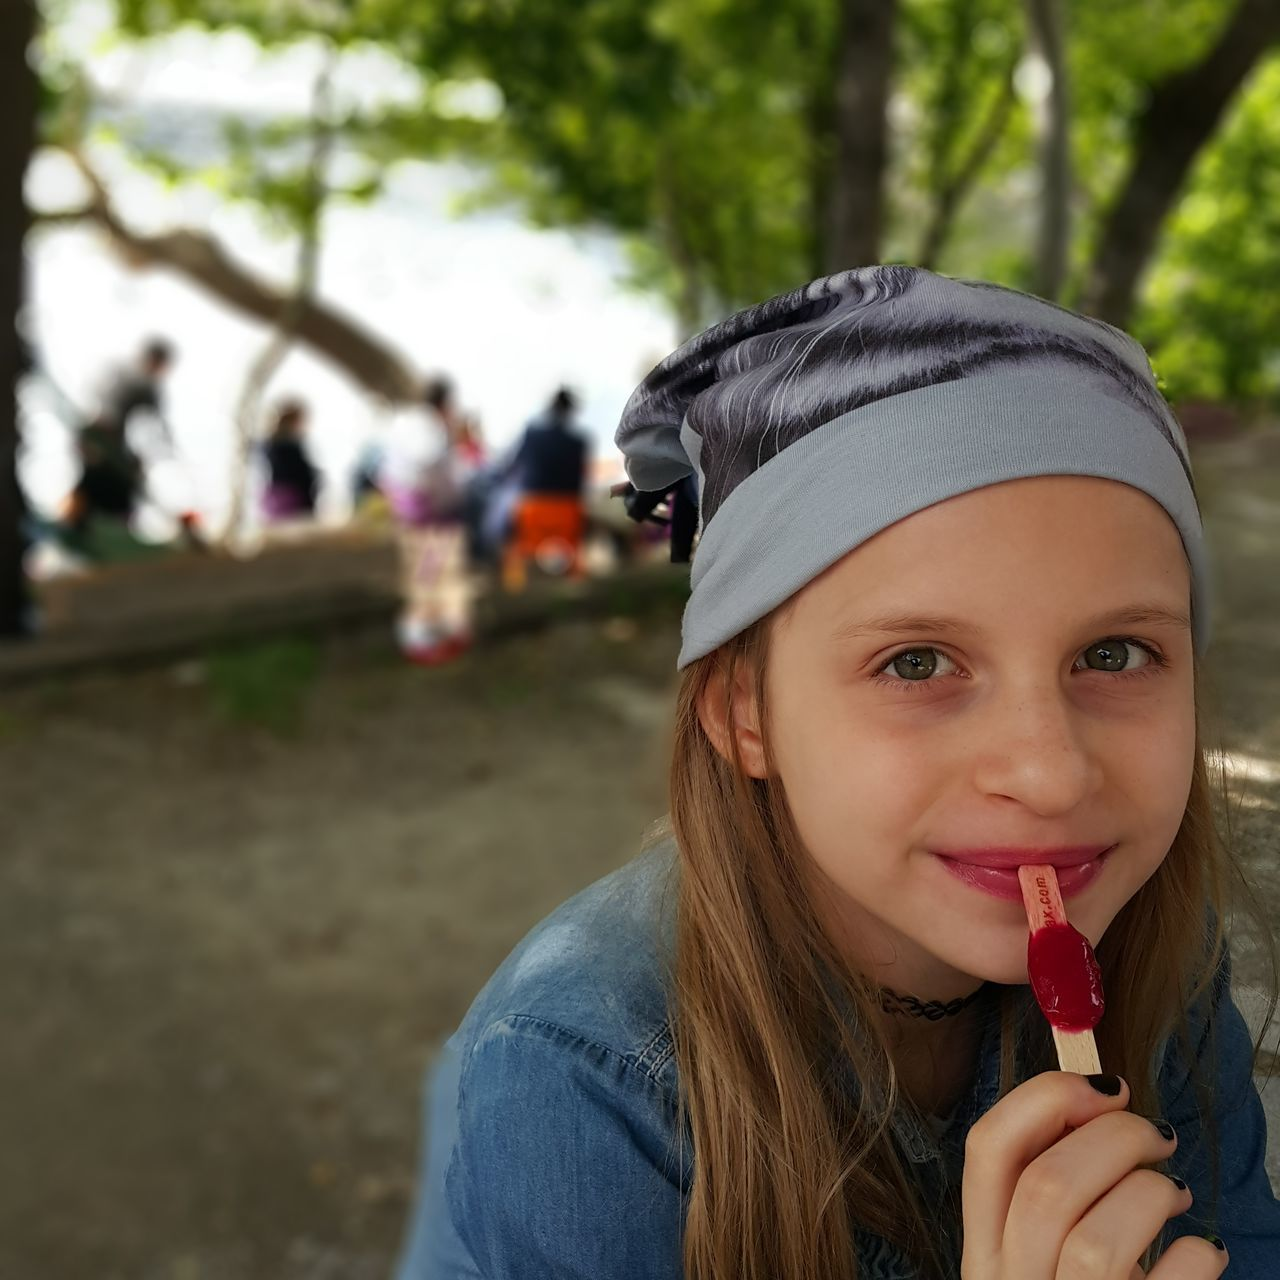 Portrait Of Girl Eating Popsicle